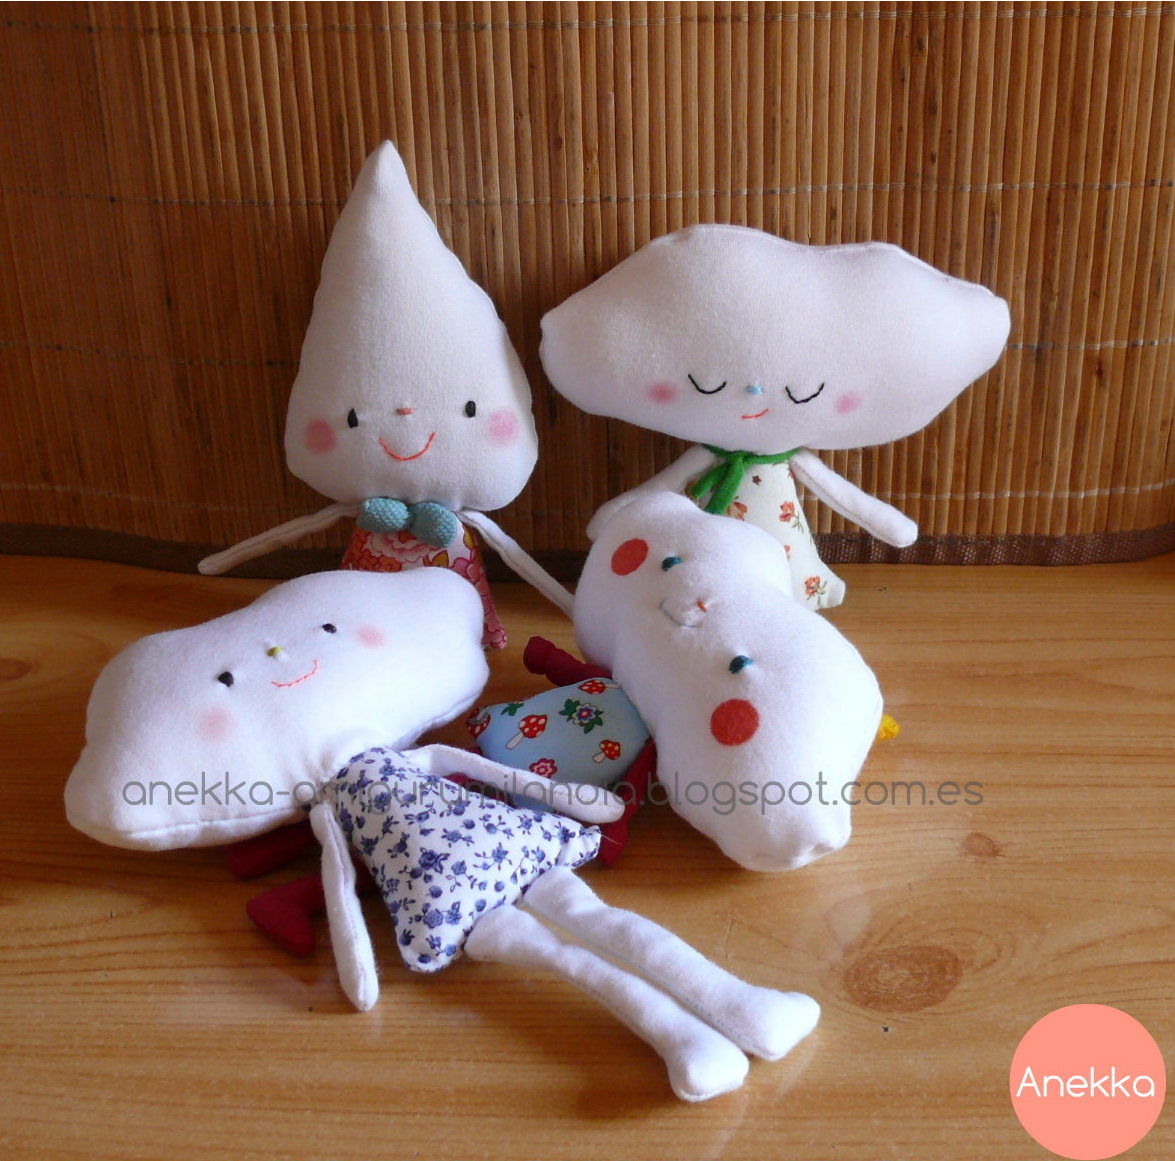 fabric doll handmade anekka